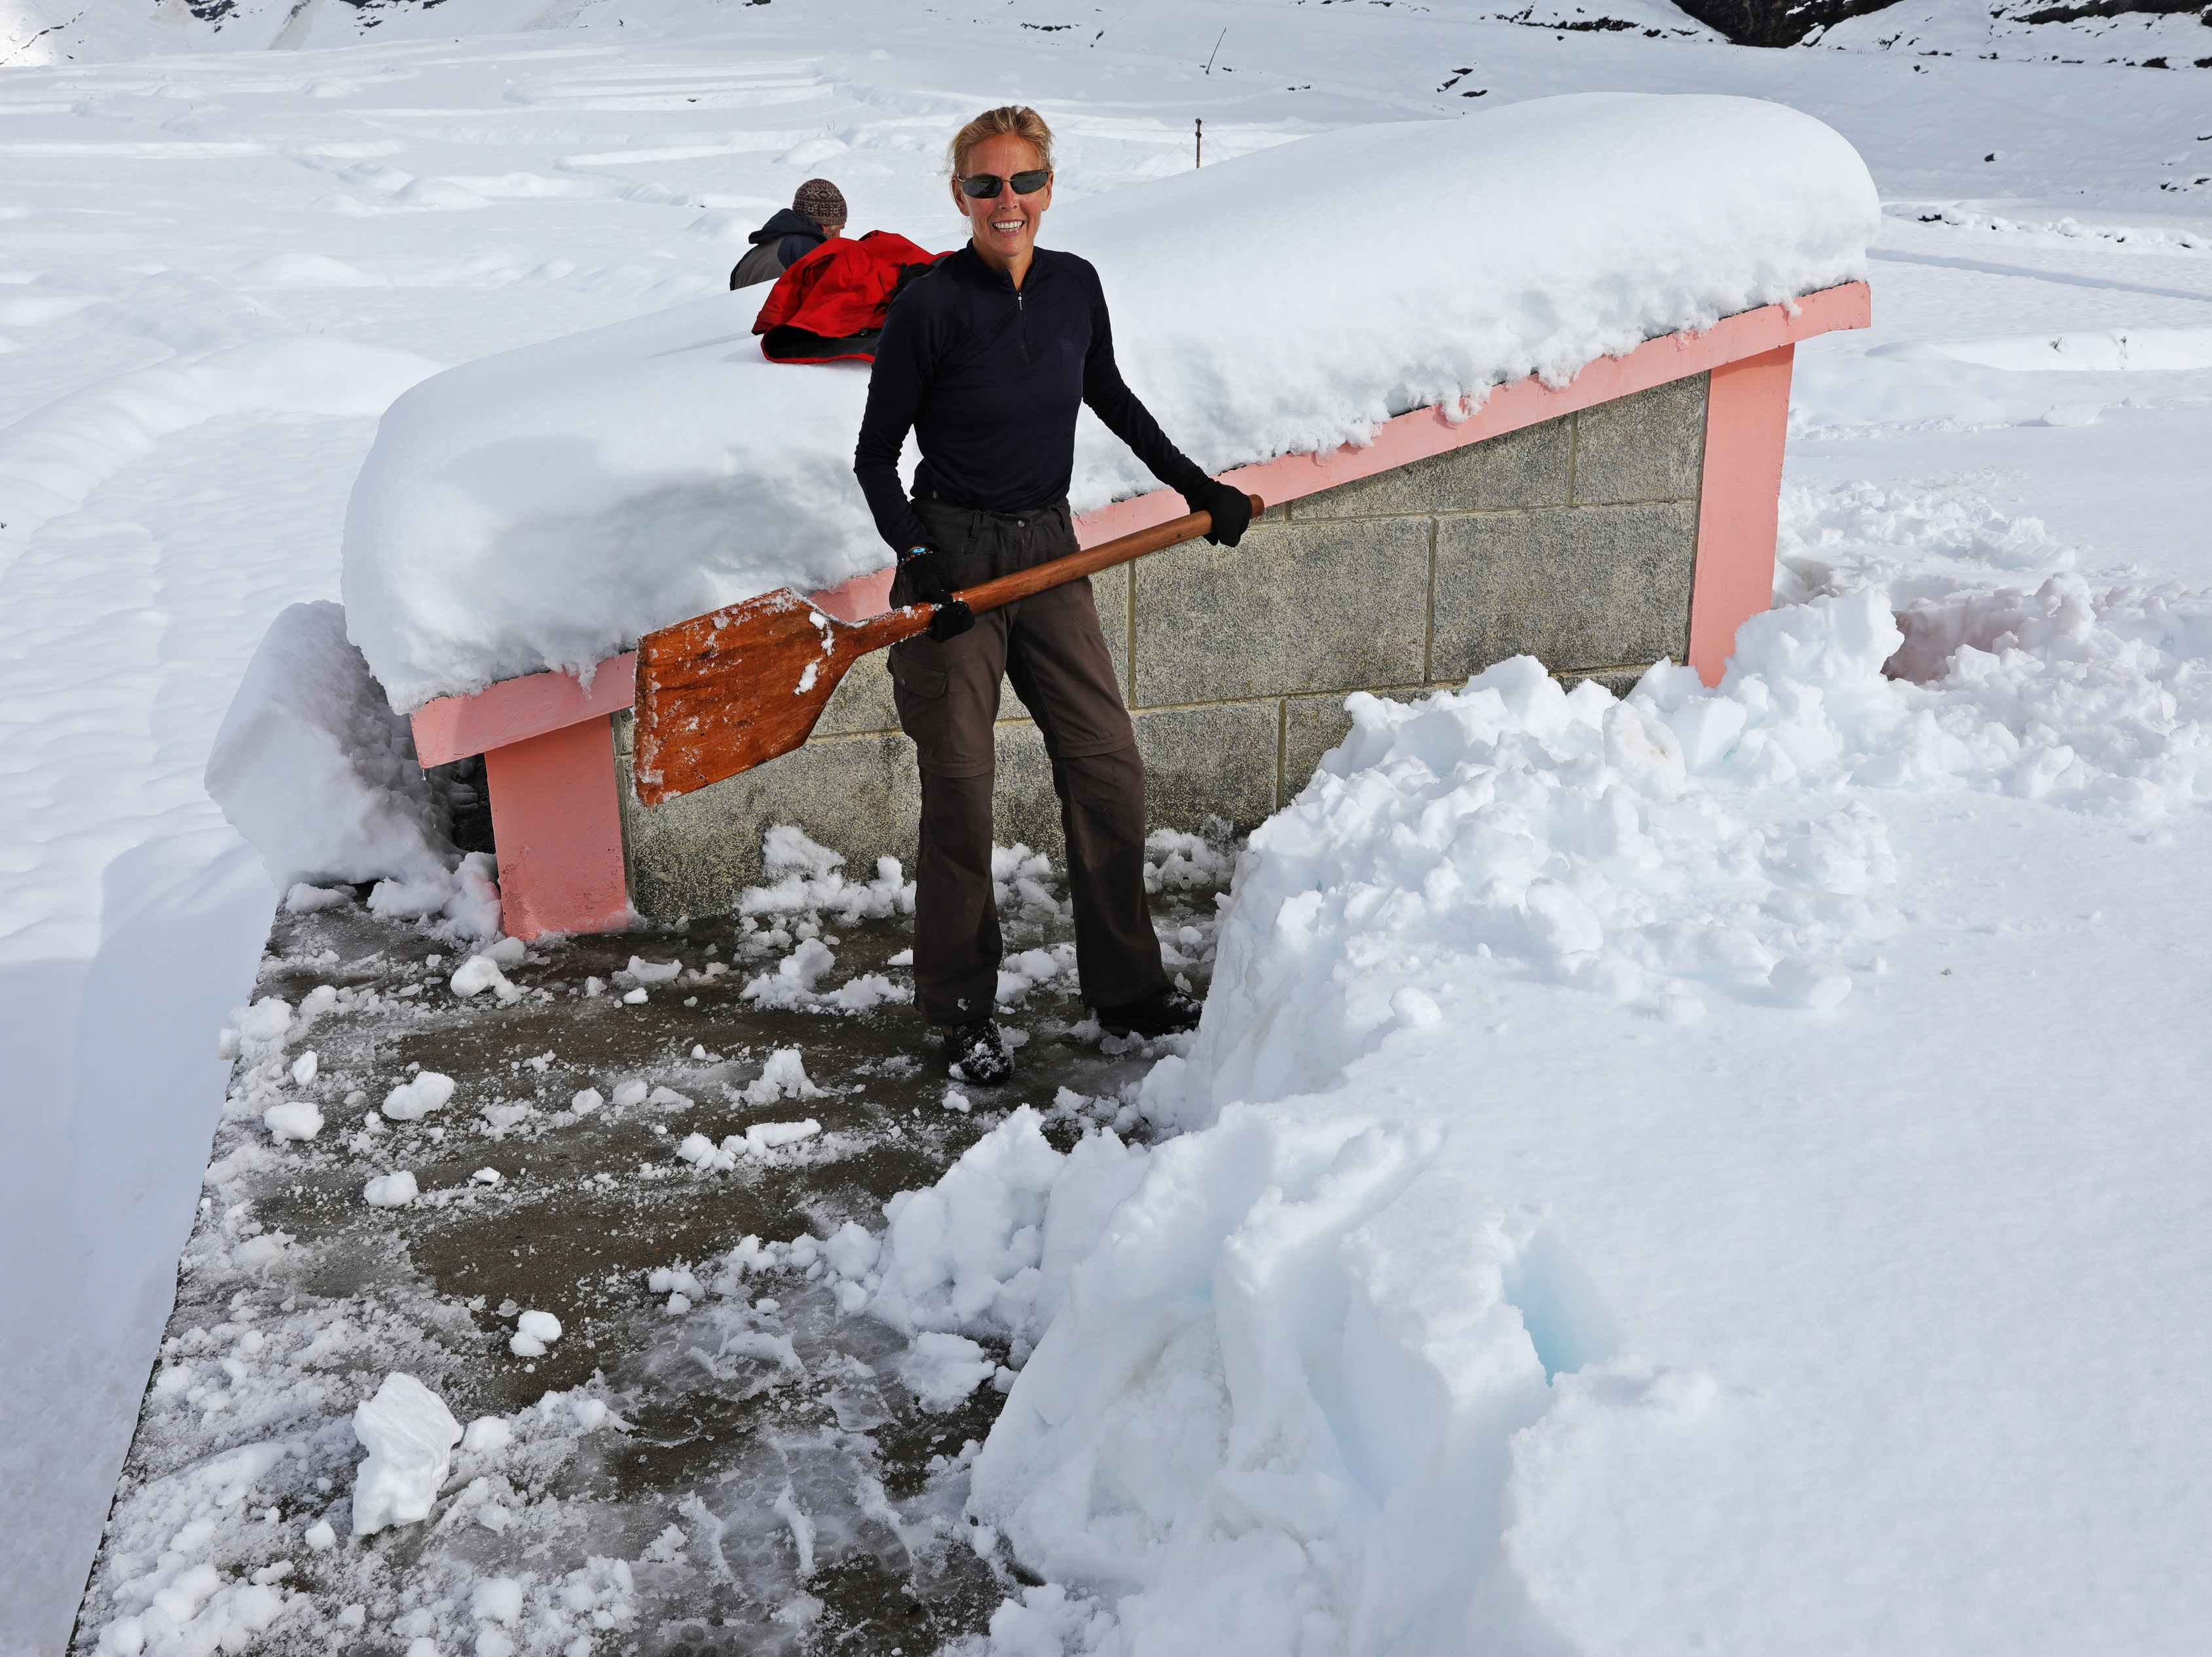 Shoveling snow with a pizza paddle